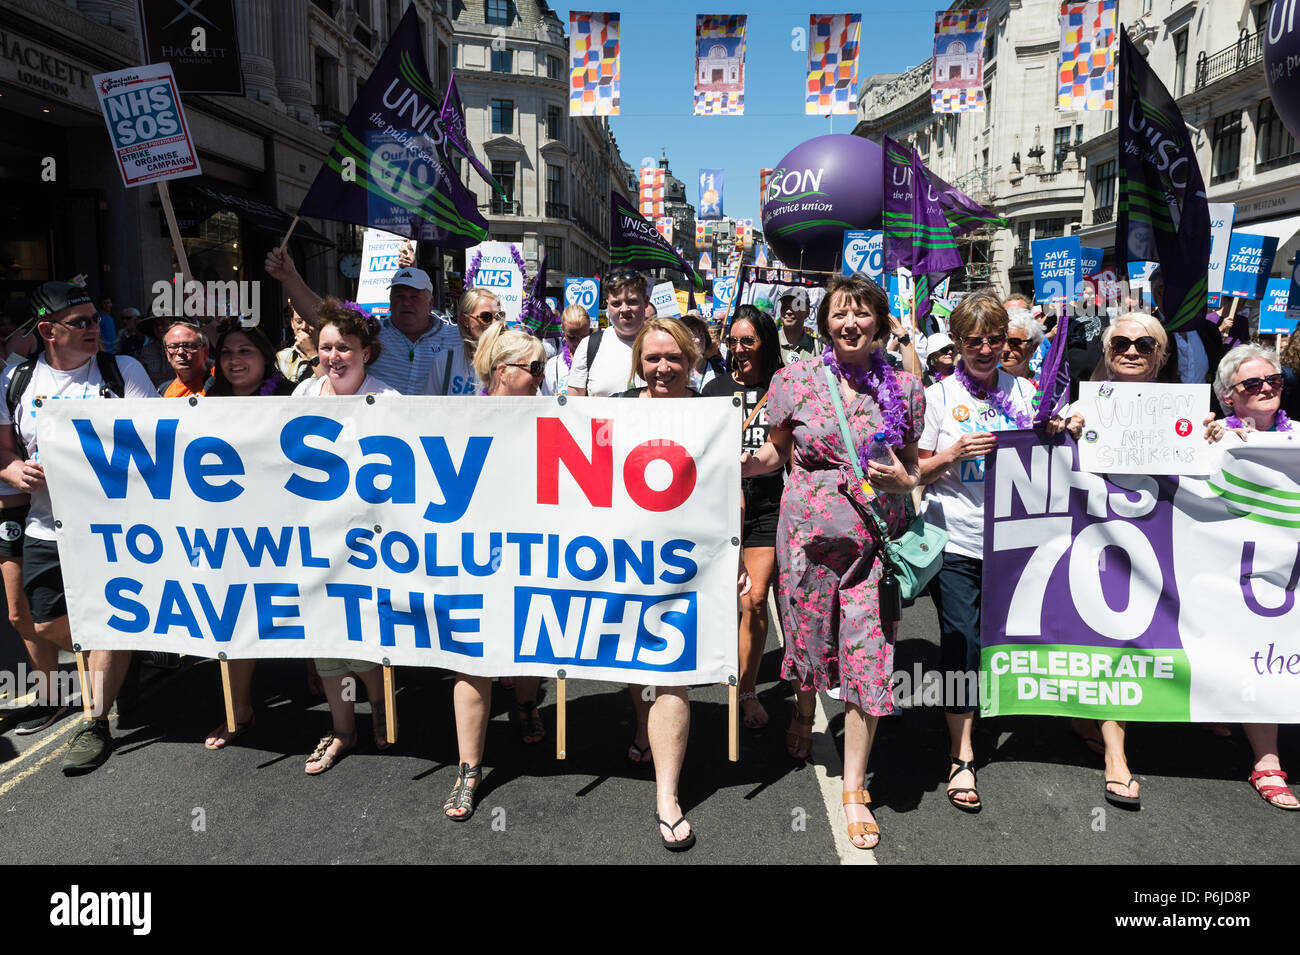 London, UK. 30th June, 2018. TUC General Secretary Frances O'Grady (CR) joined thousands of demonstrators taking part in a march followed by a rally outside Downing Street in central London to celebrate the 70th anniversary of the National Health Service. Protesters call for an end to austerity policies which lead to underfunding and staff shortages in the NHS, and demand that it remains publicly owned and accessible to everyone. Credit: Wiktor Szymanowicz/Alamy Live News - Stock Image